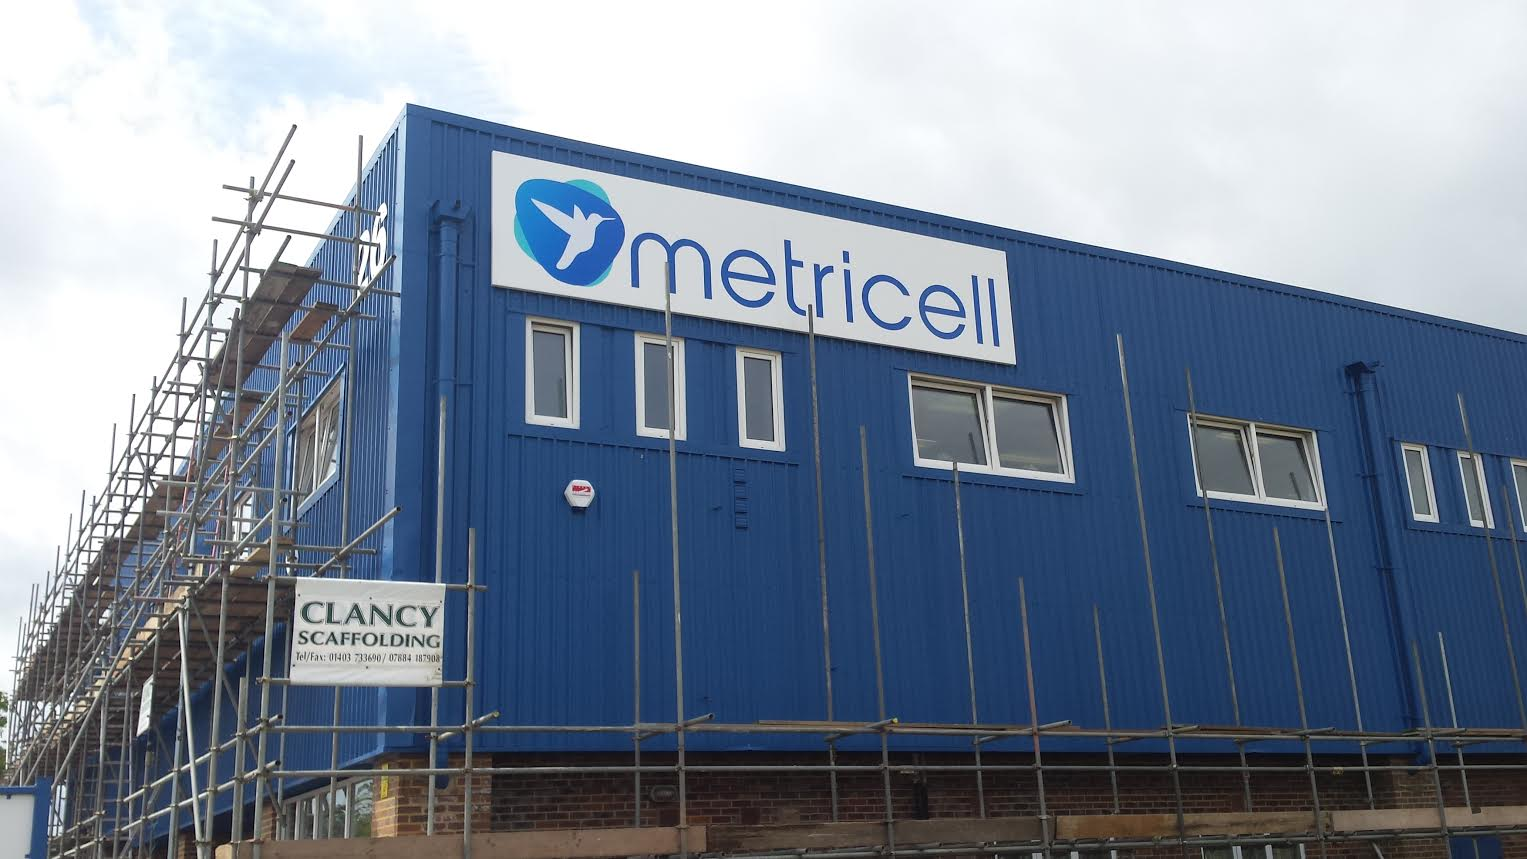 Outdoor signage of Metricell offices